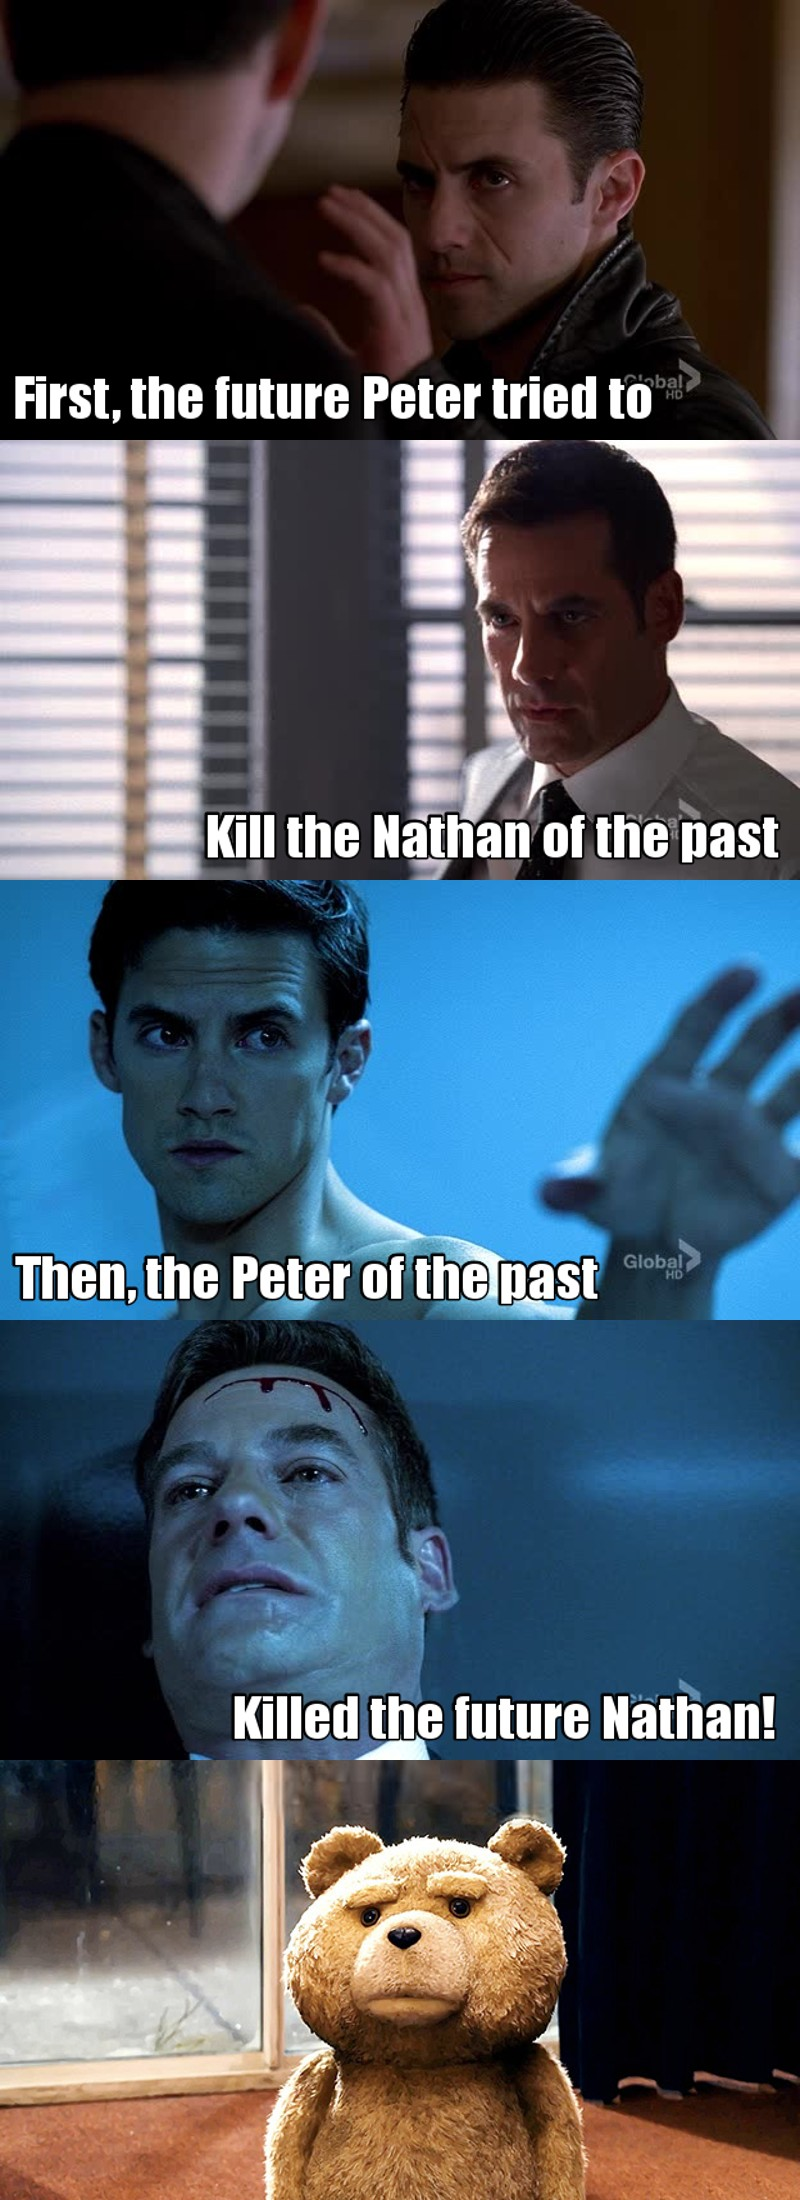 Poor Nathan..